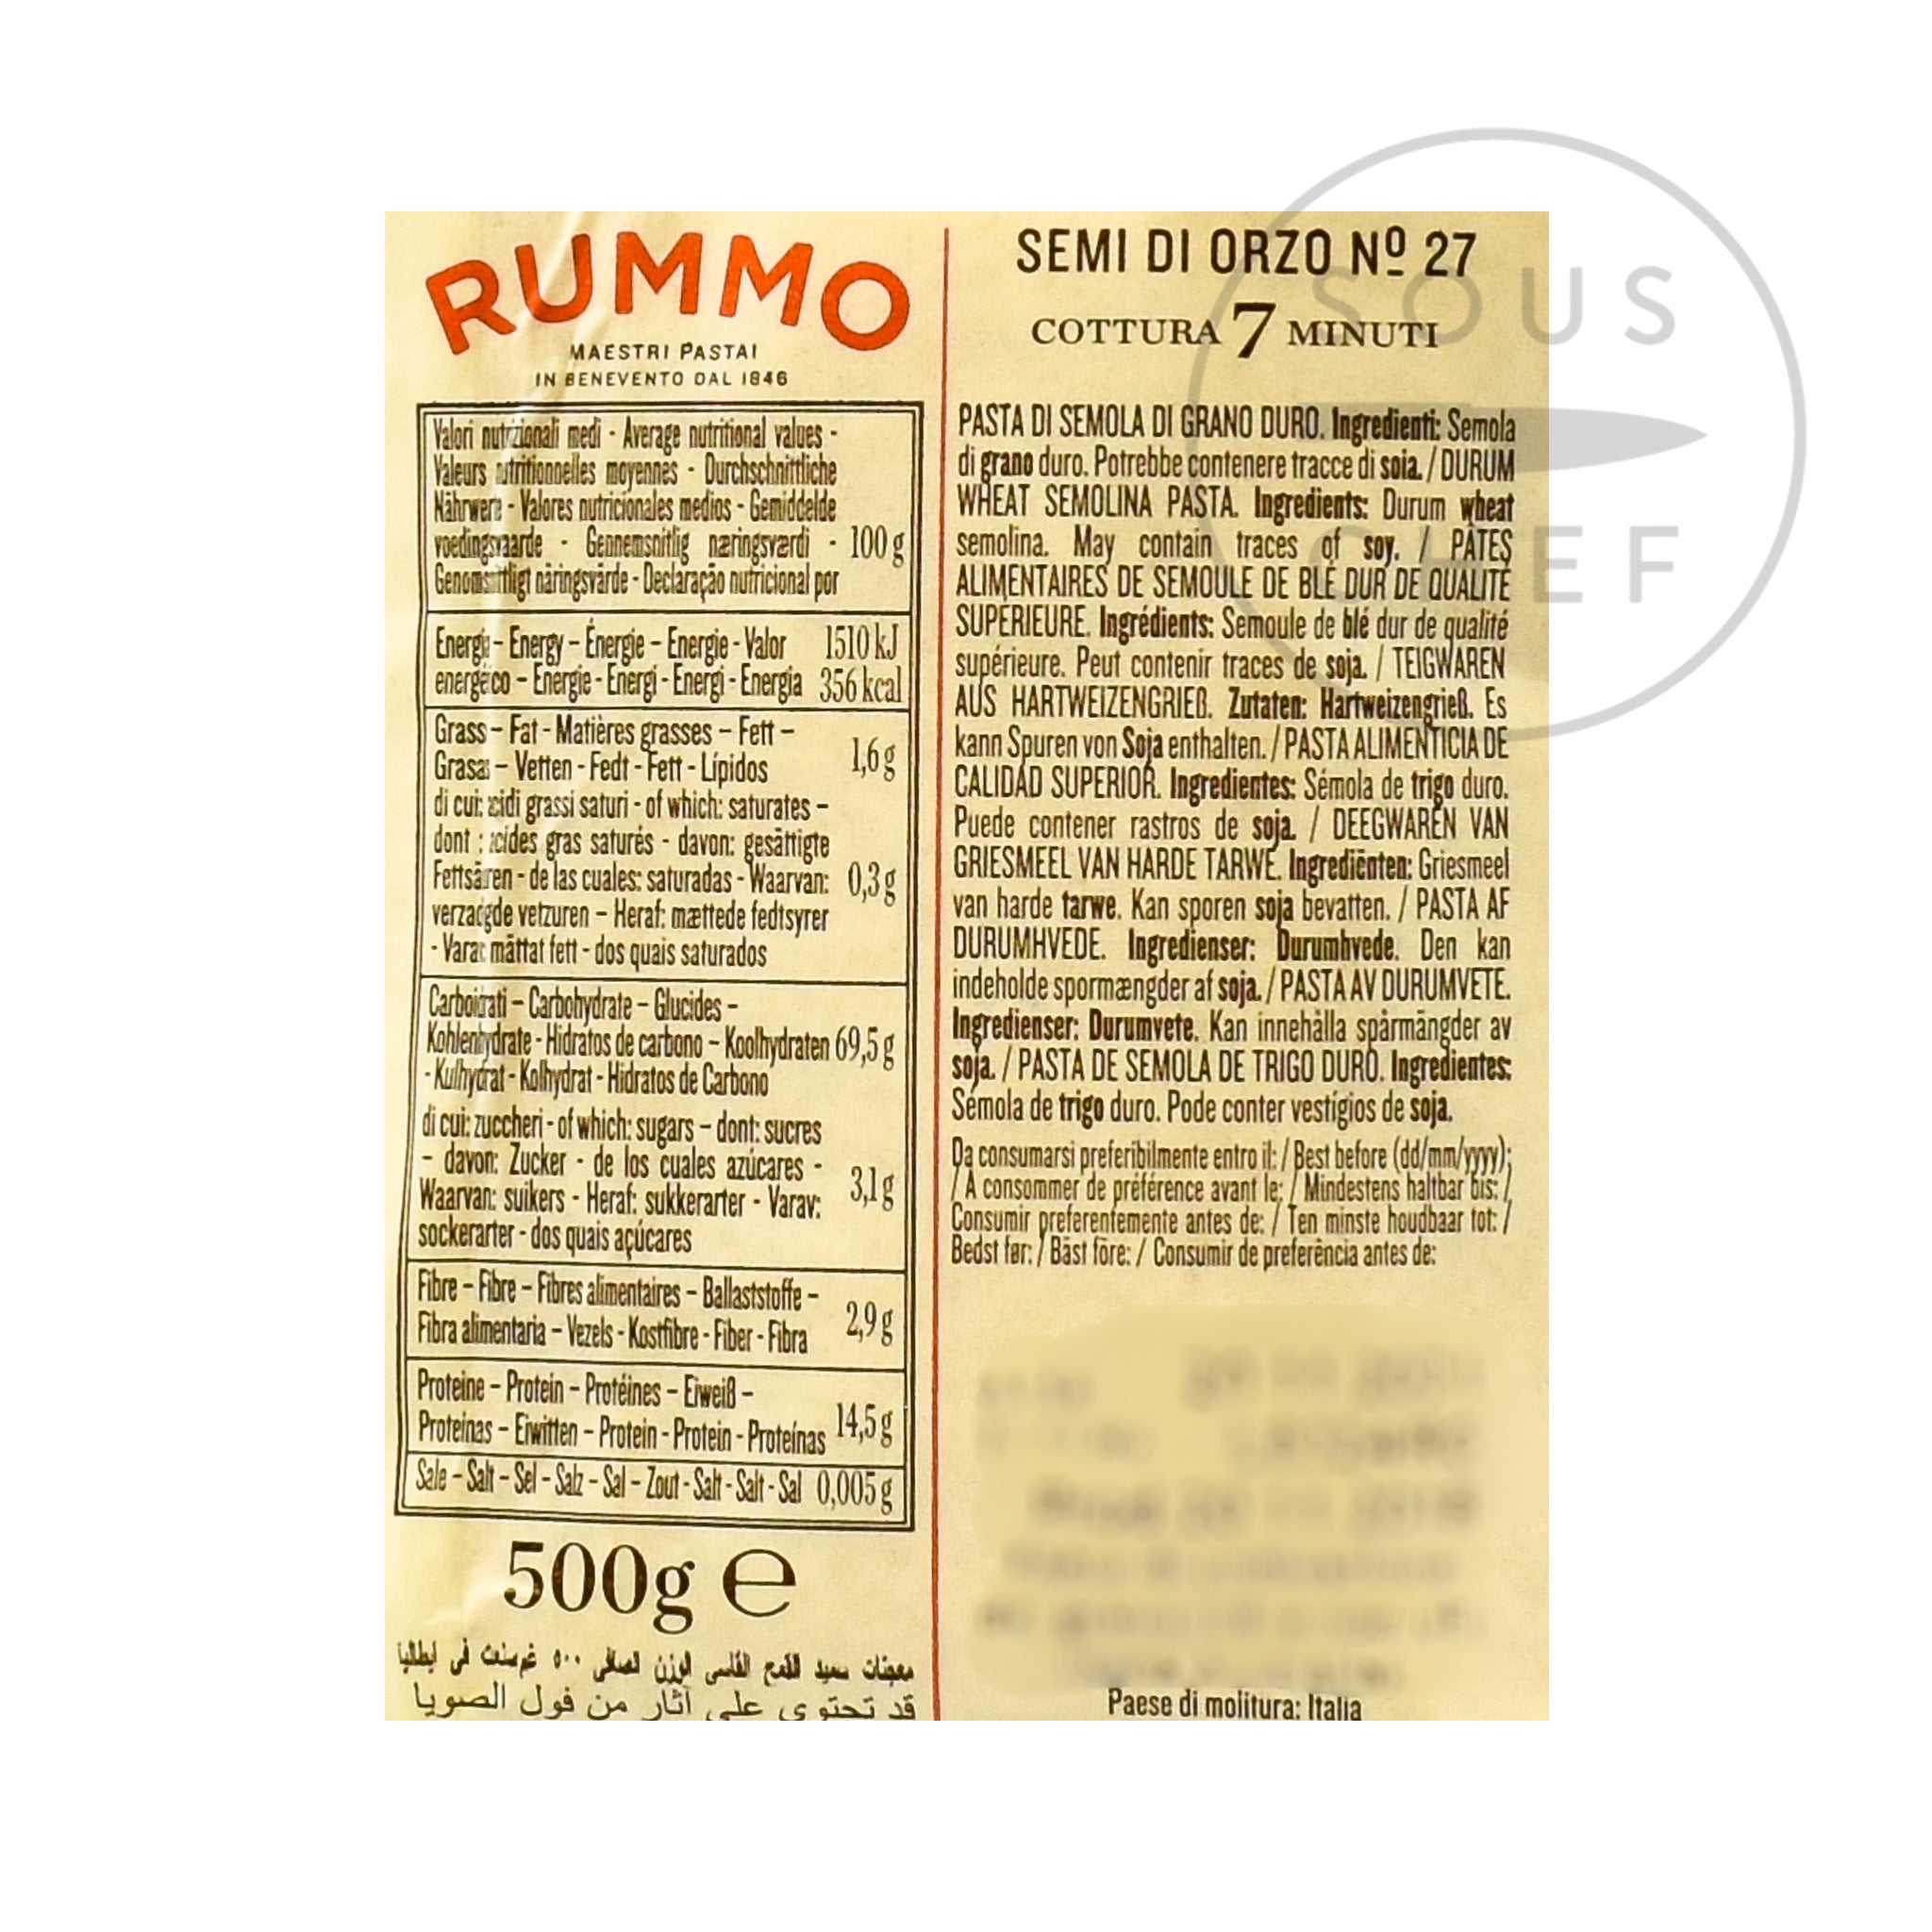 Rummo orzo pasta semi di orzo ingredients and nutritional information